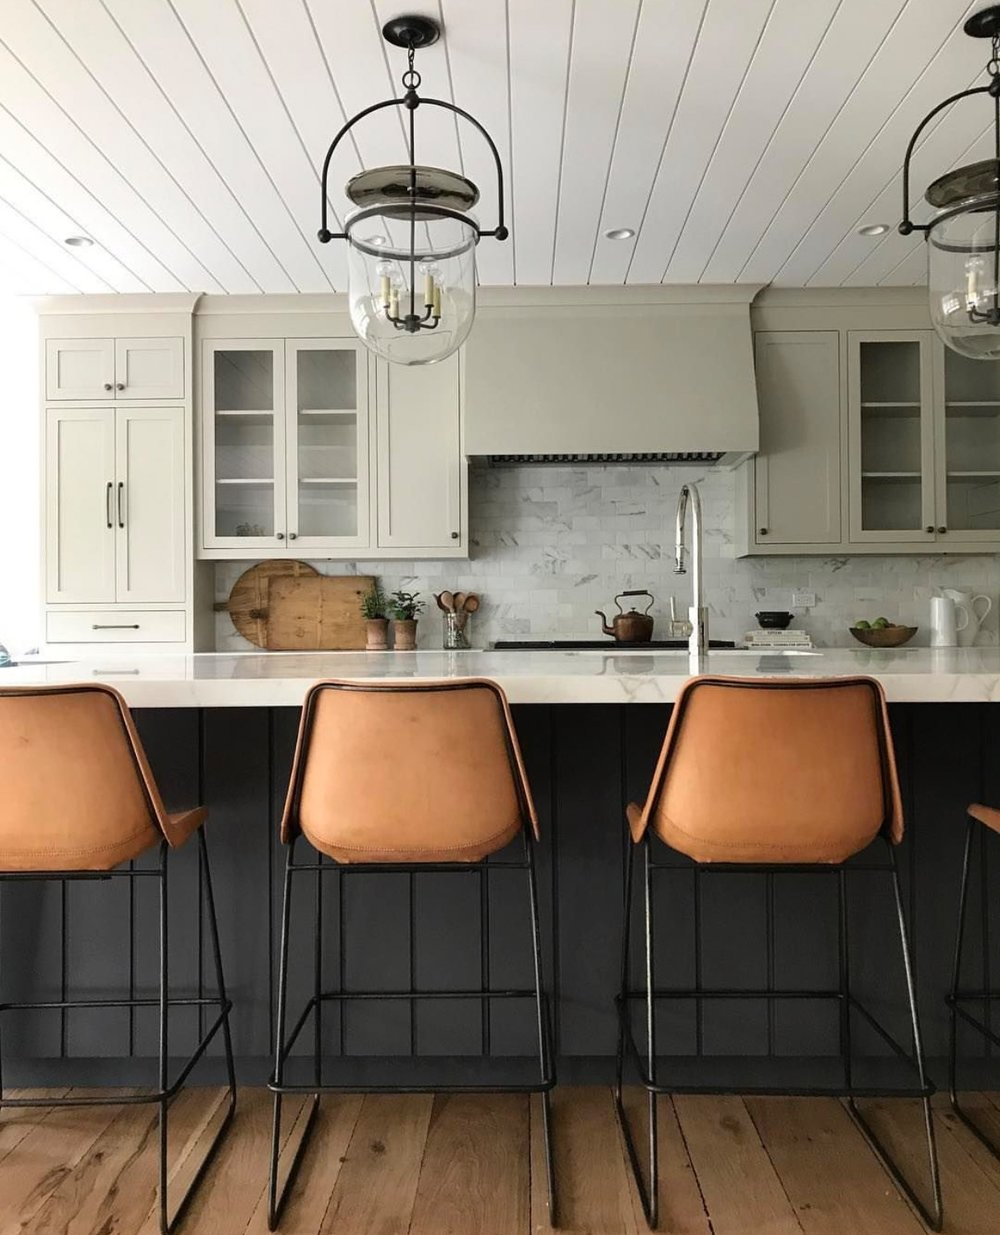 How To Design a Non-White Kitchen in a White Kitchen World. Above image from @amberinteriors